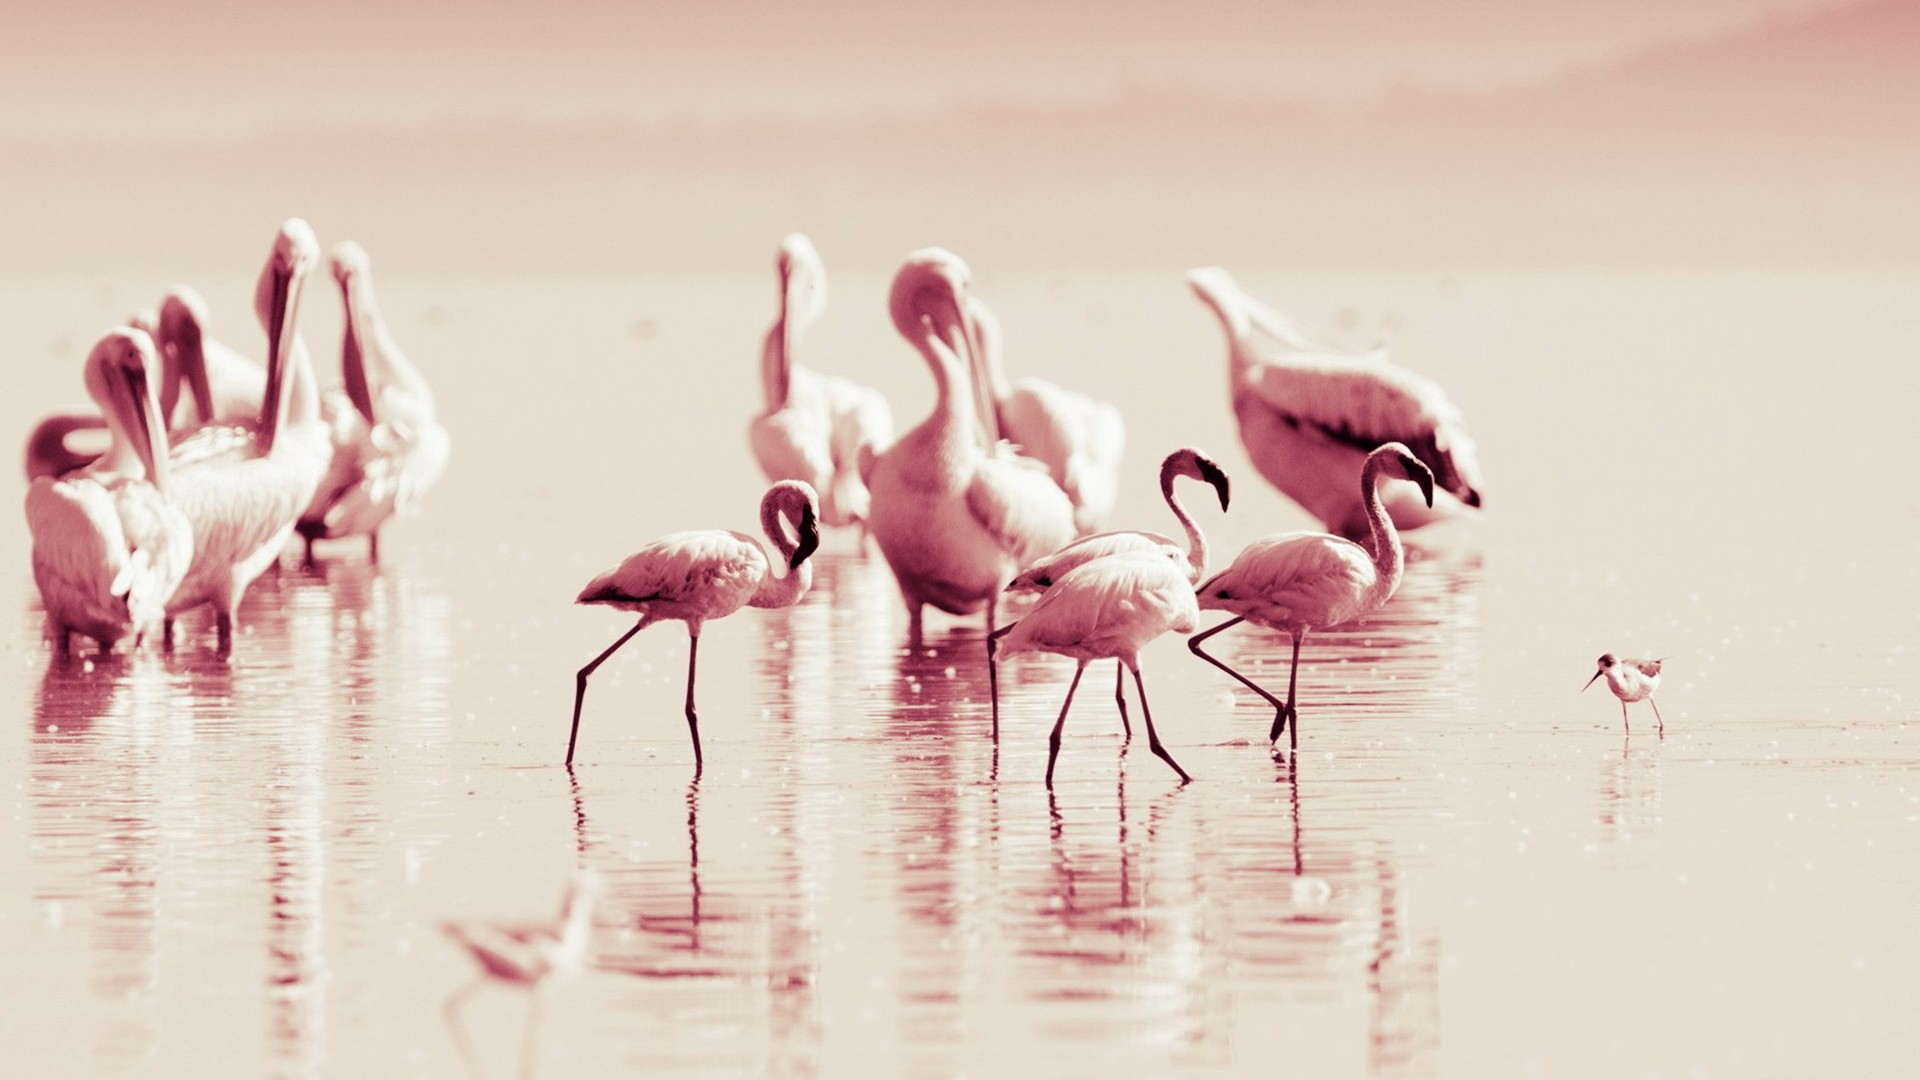 Free Download Flamingo Screen Wallpaper Pictures To Pin 1920x1080